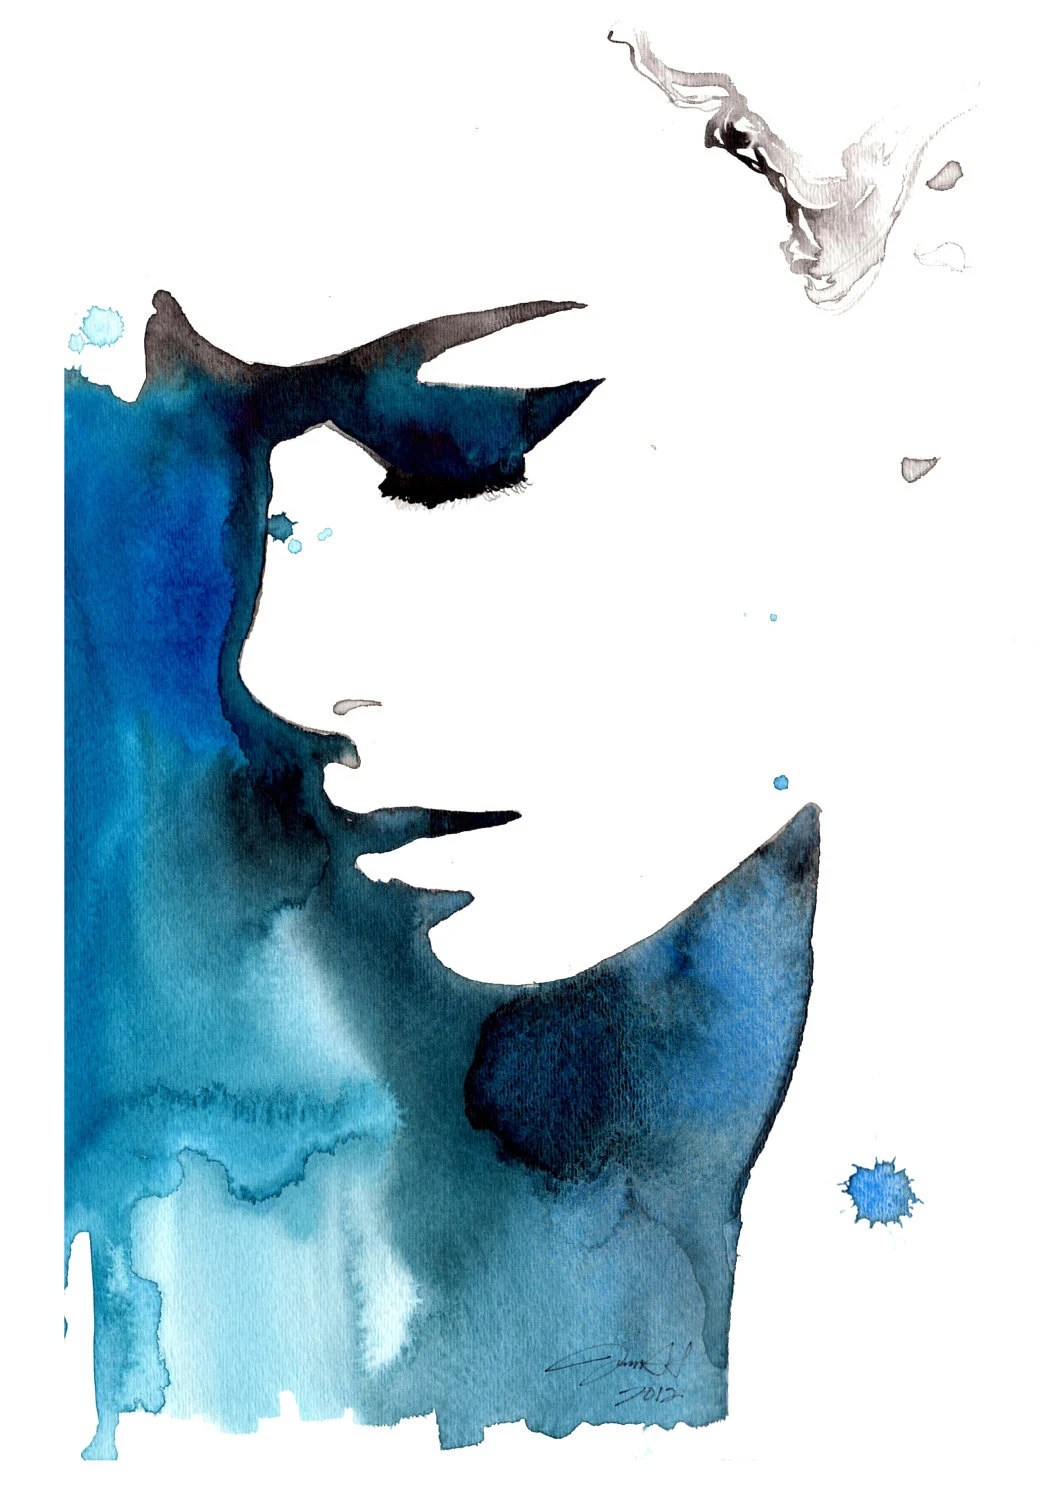 Print from original watercolor fashion illustration by Jessica Durrant titled Black and Blue for You - JessicaIllustration